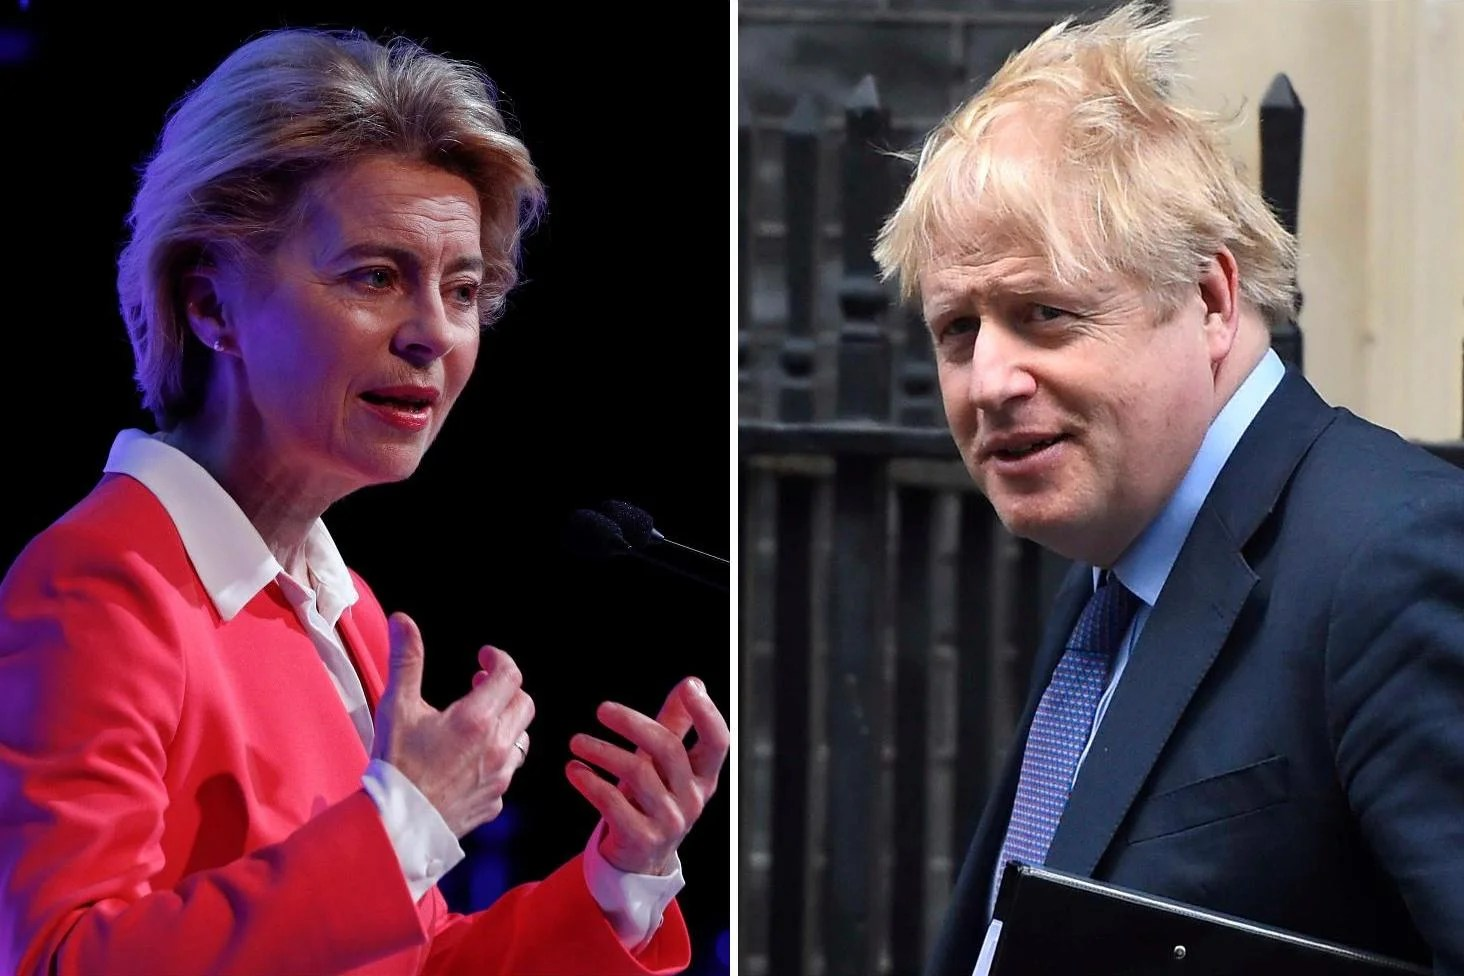 Downing Street hits back at EU for 'unnecessarily difficult' Brexit talks after France blames UK for deadlock